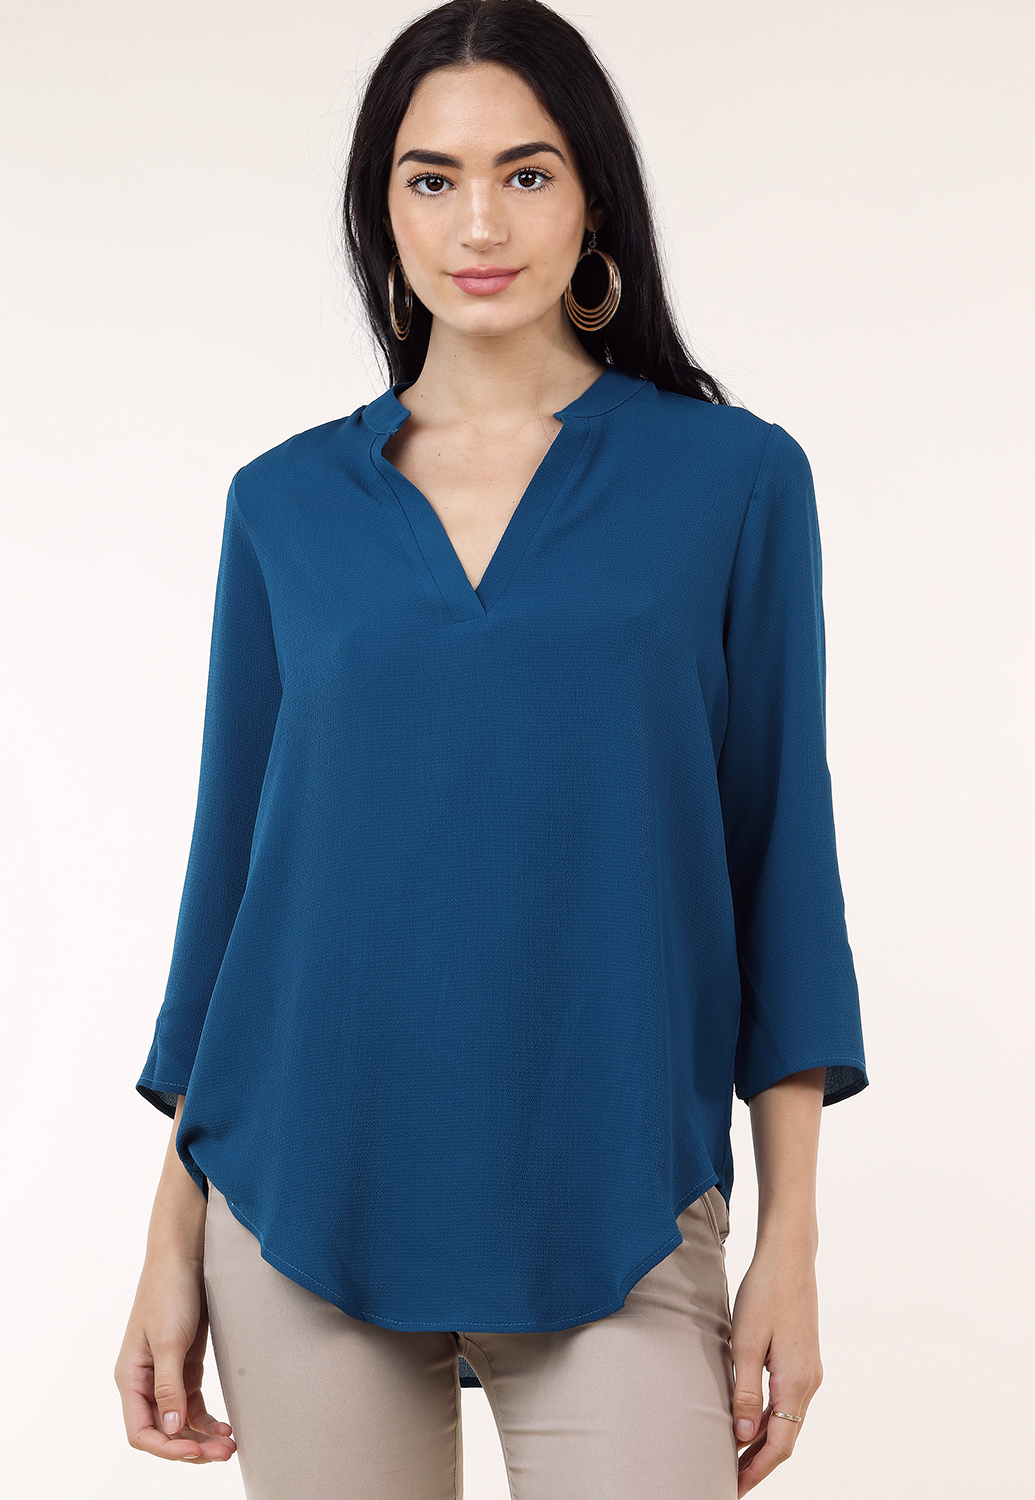 V-Neck 3/4 Sleeve Top